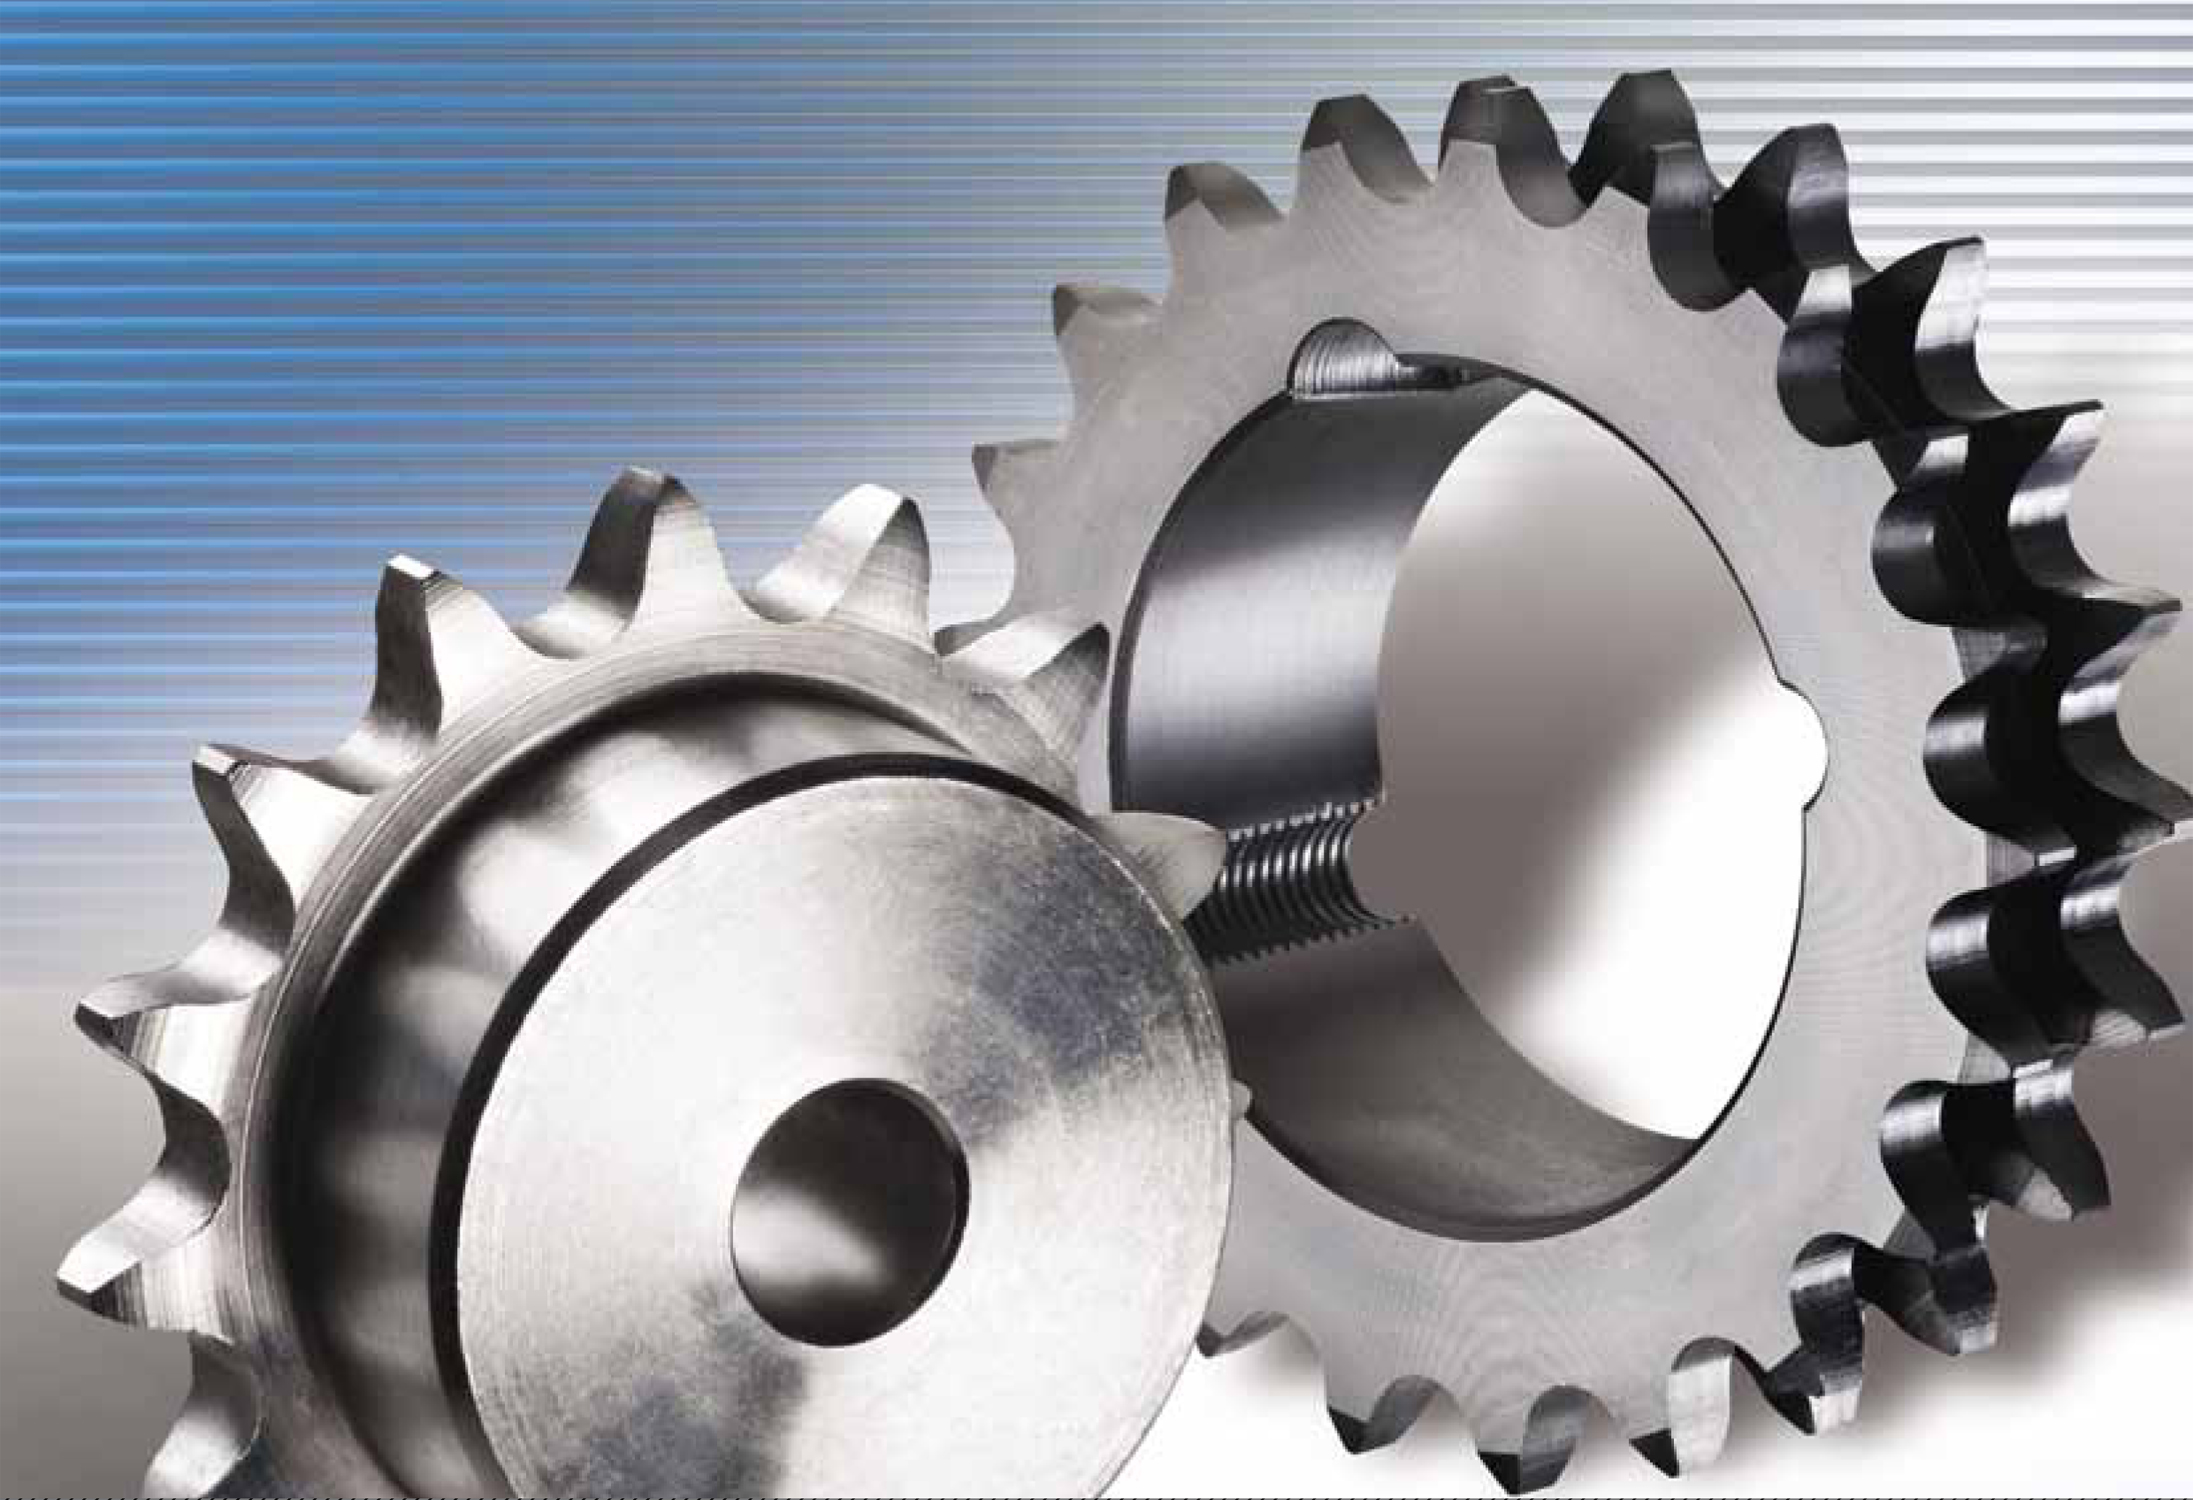 Tsubaki launches a full range of sprockets